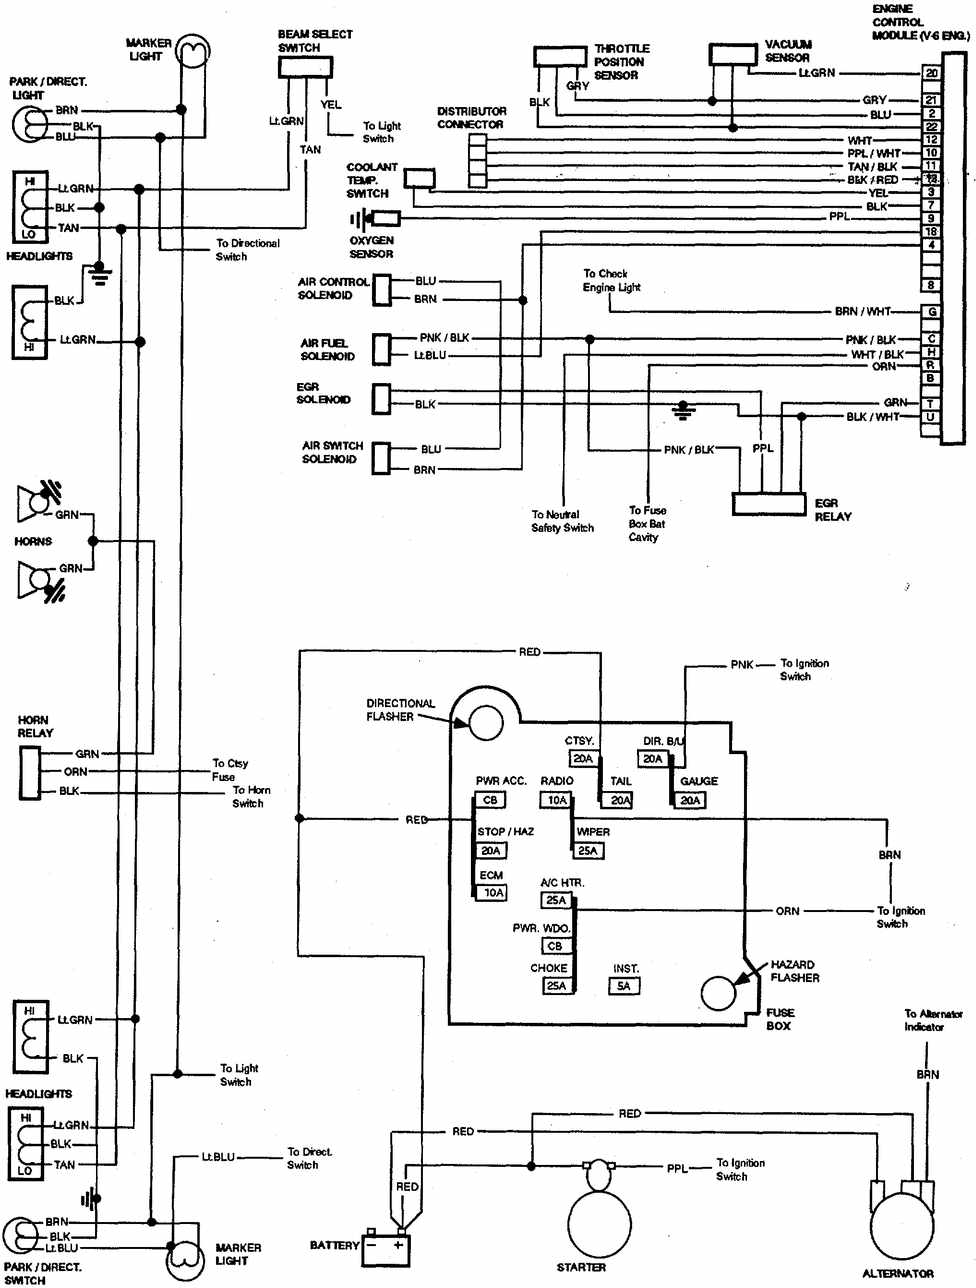 gm hei wiring diagram 350 chevrolet chevrolet v8 trucks 1981 1987 electrical wiring diagram gm hei wiring diagram 1983